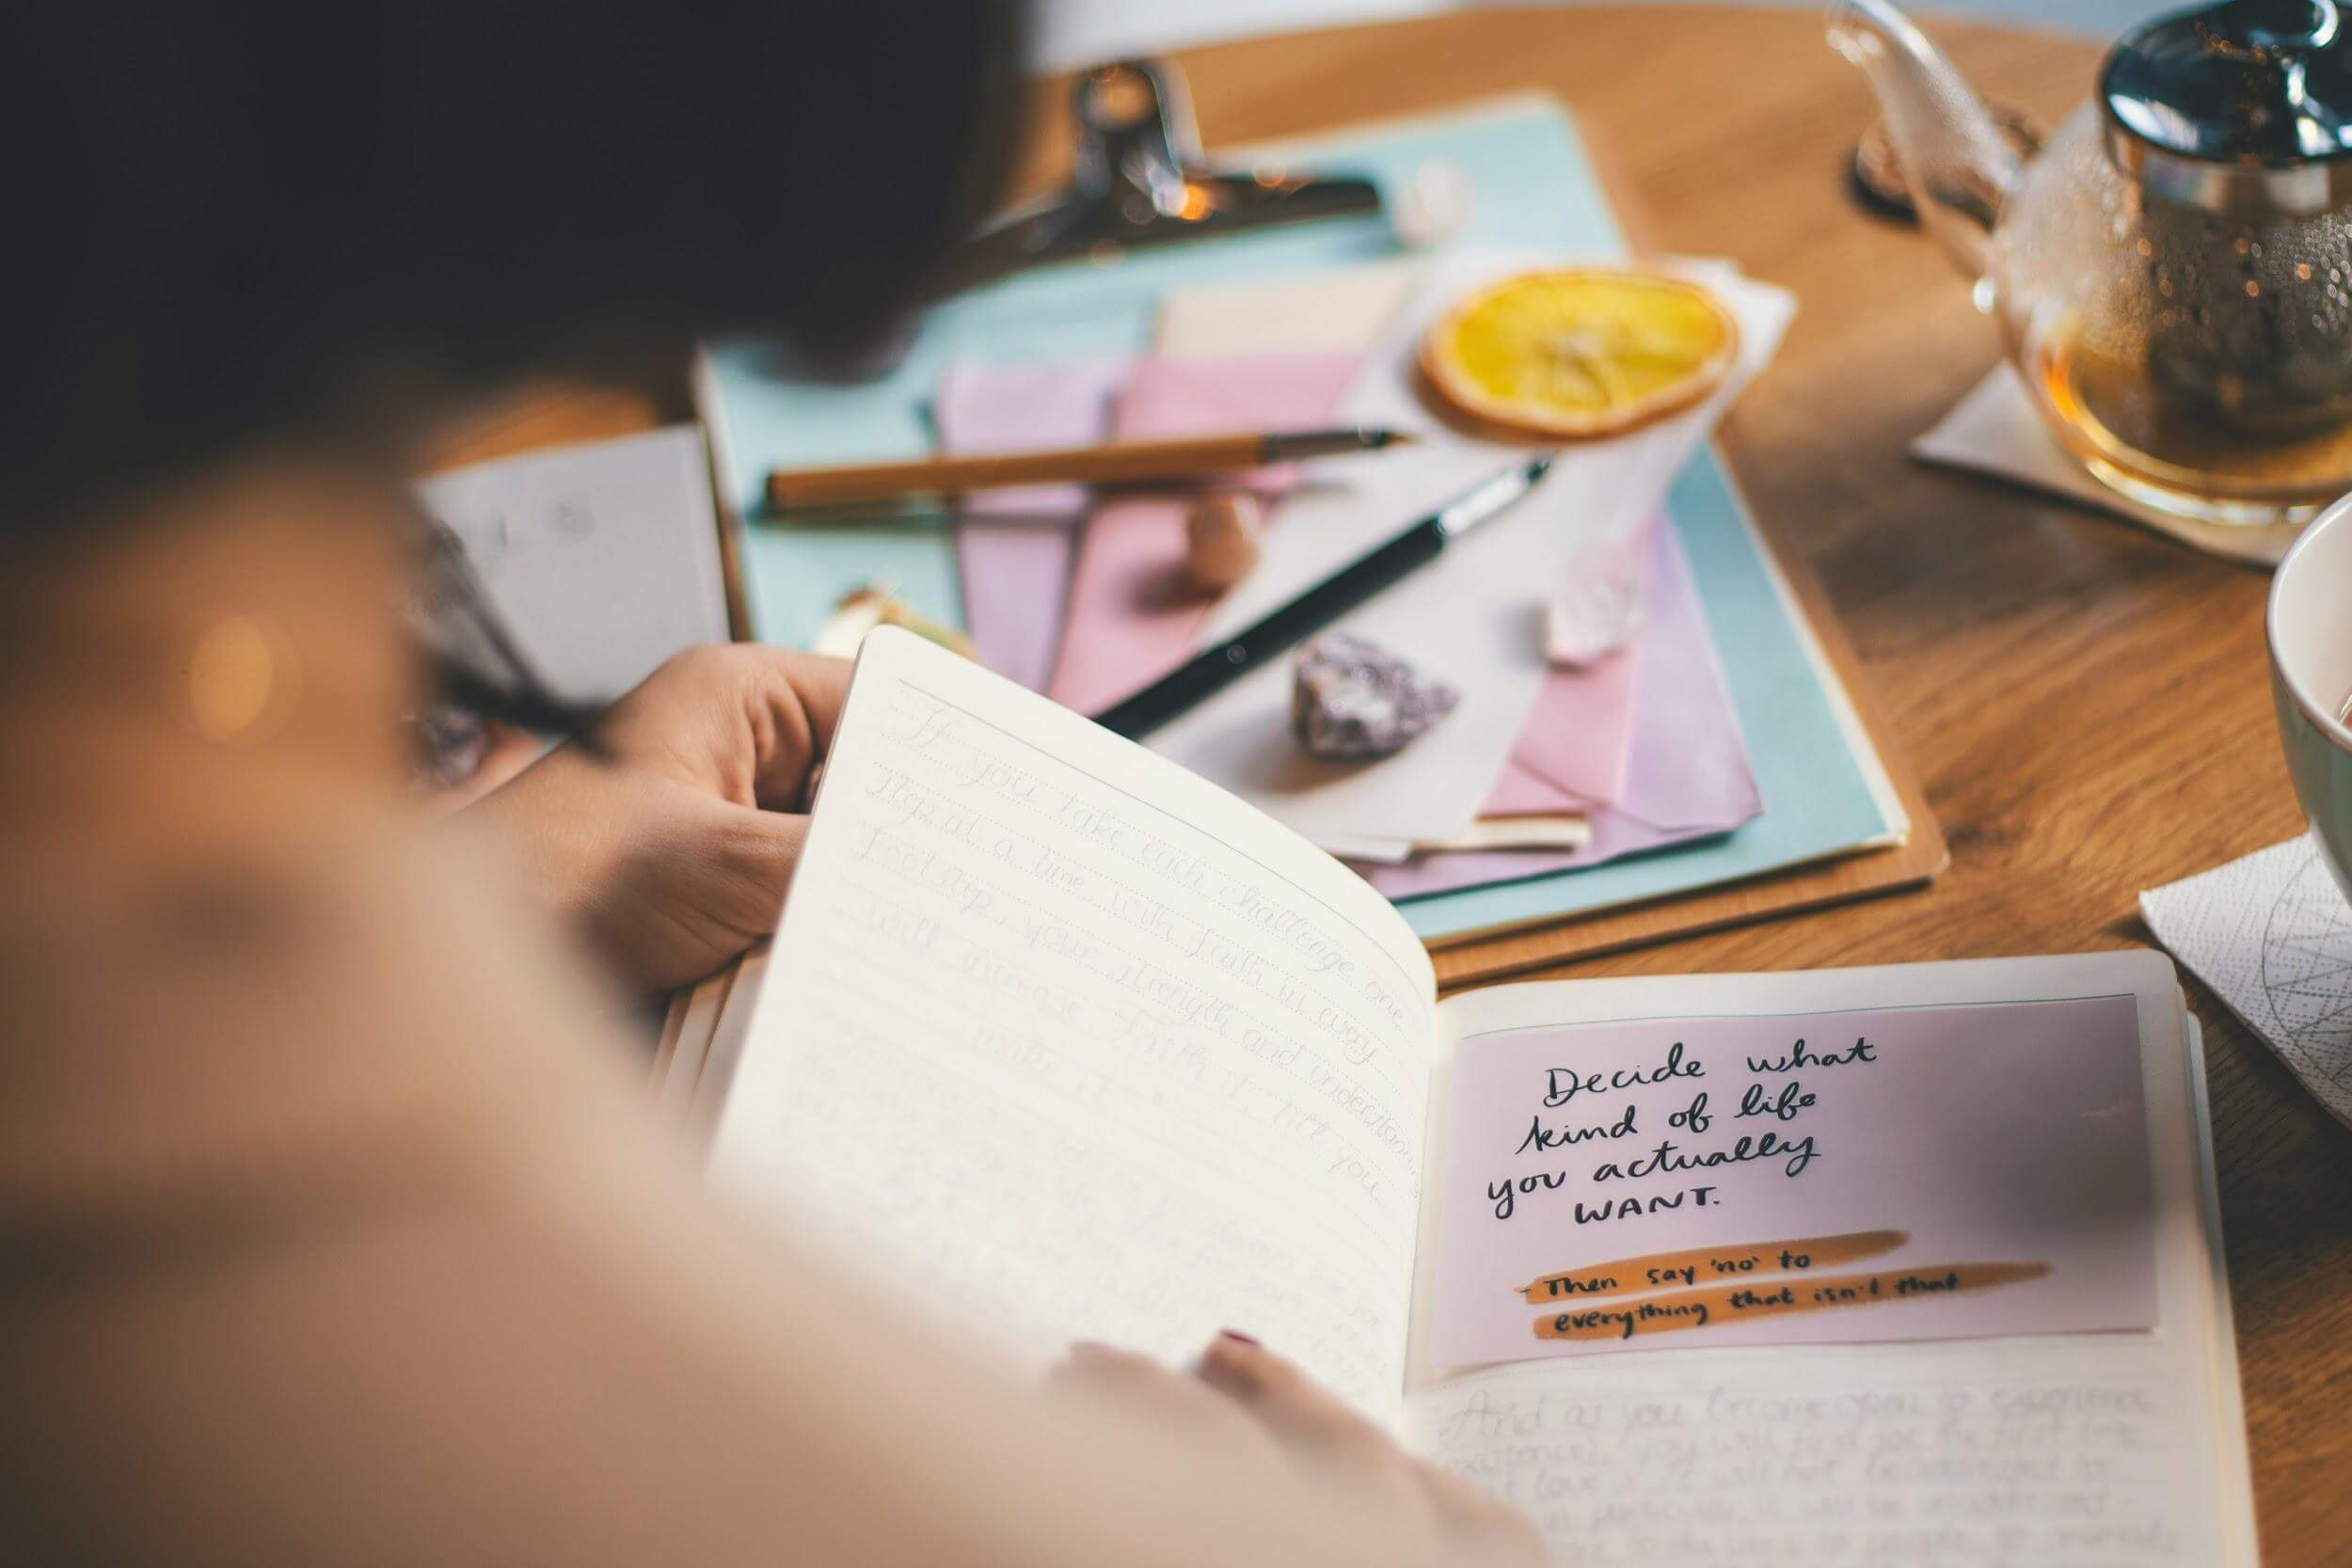 How to get started with your self-reflection journaling